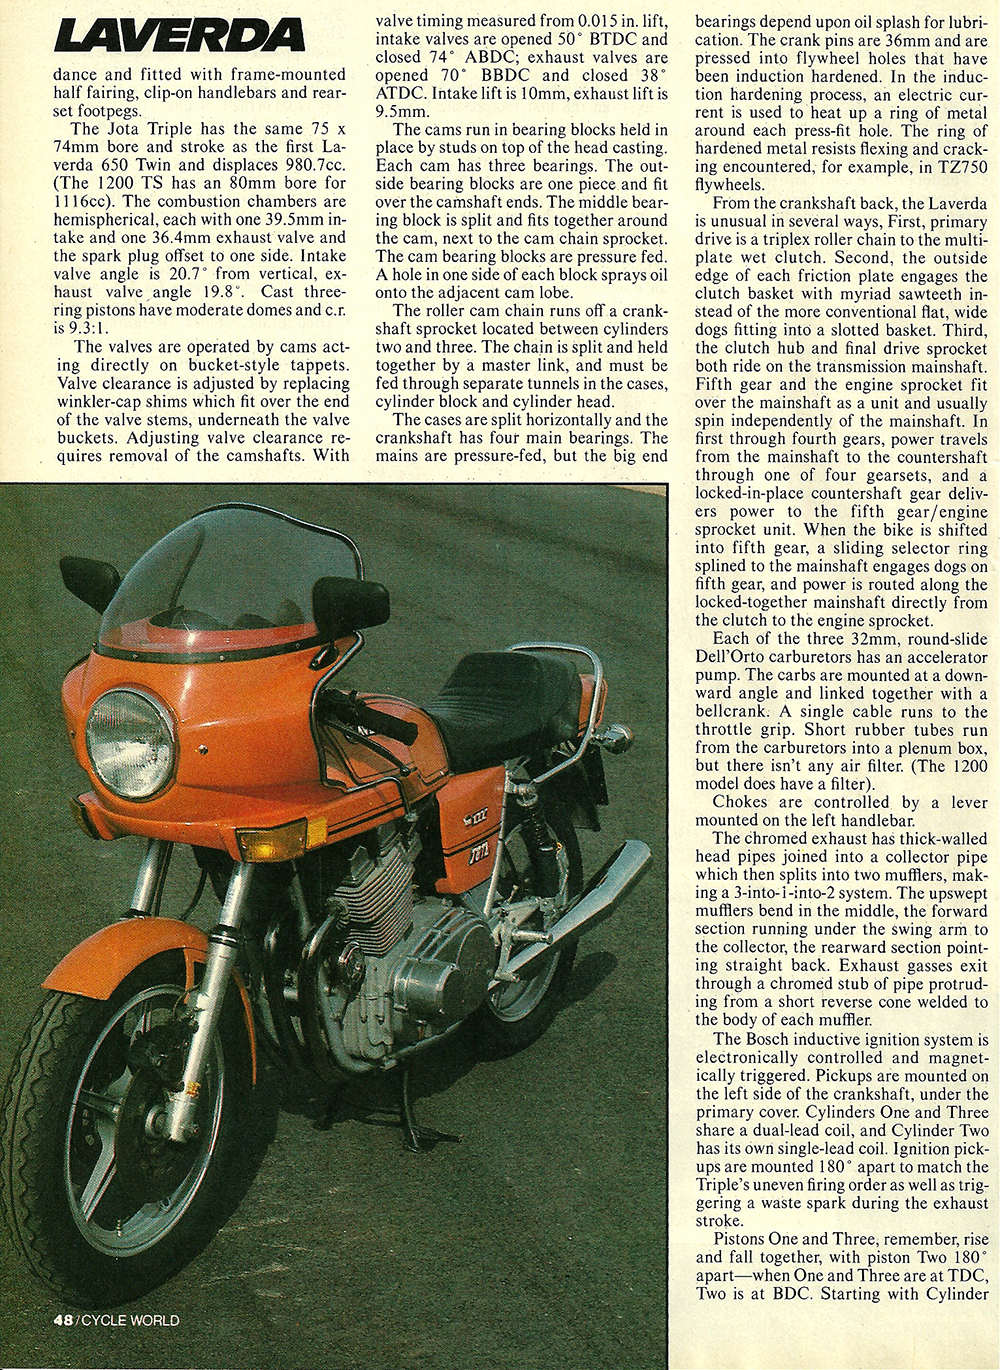 1982 Laverda Jota 1000 road test 3.jpg